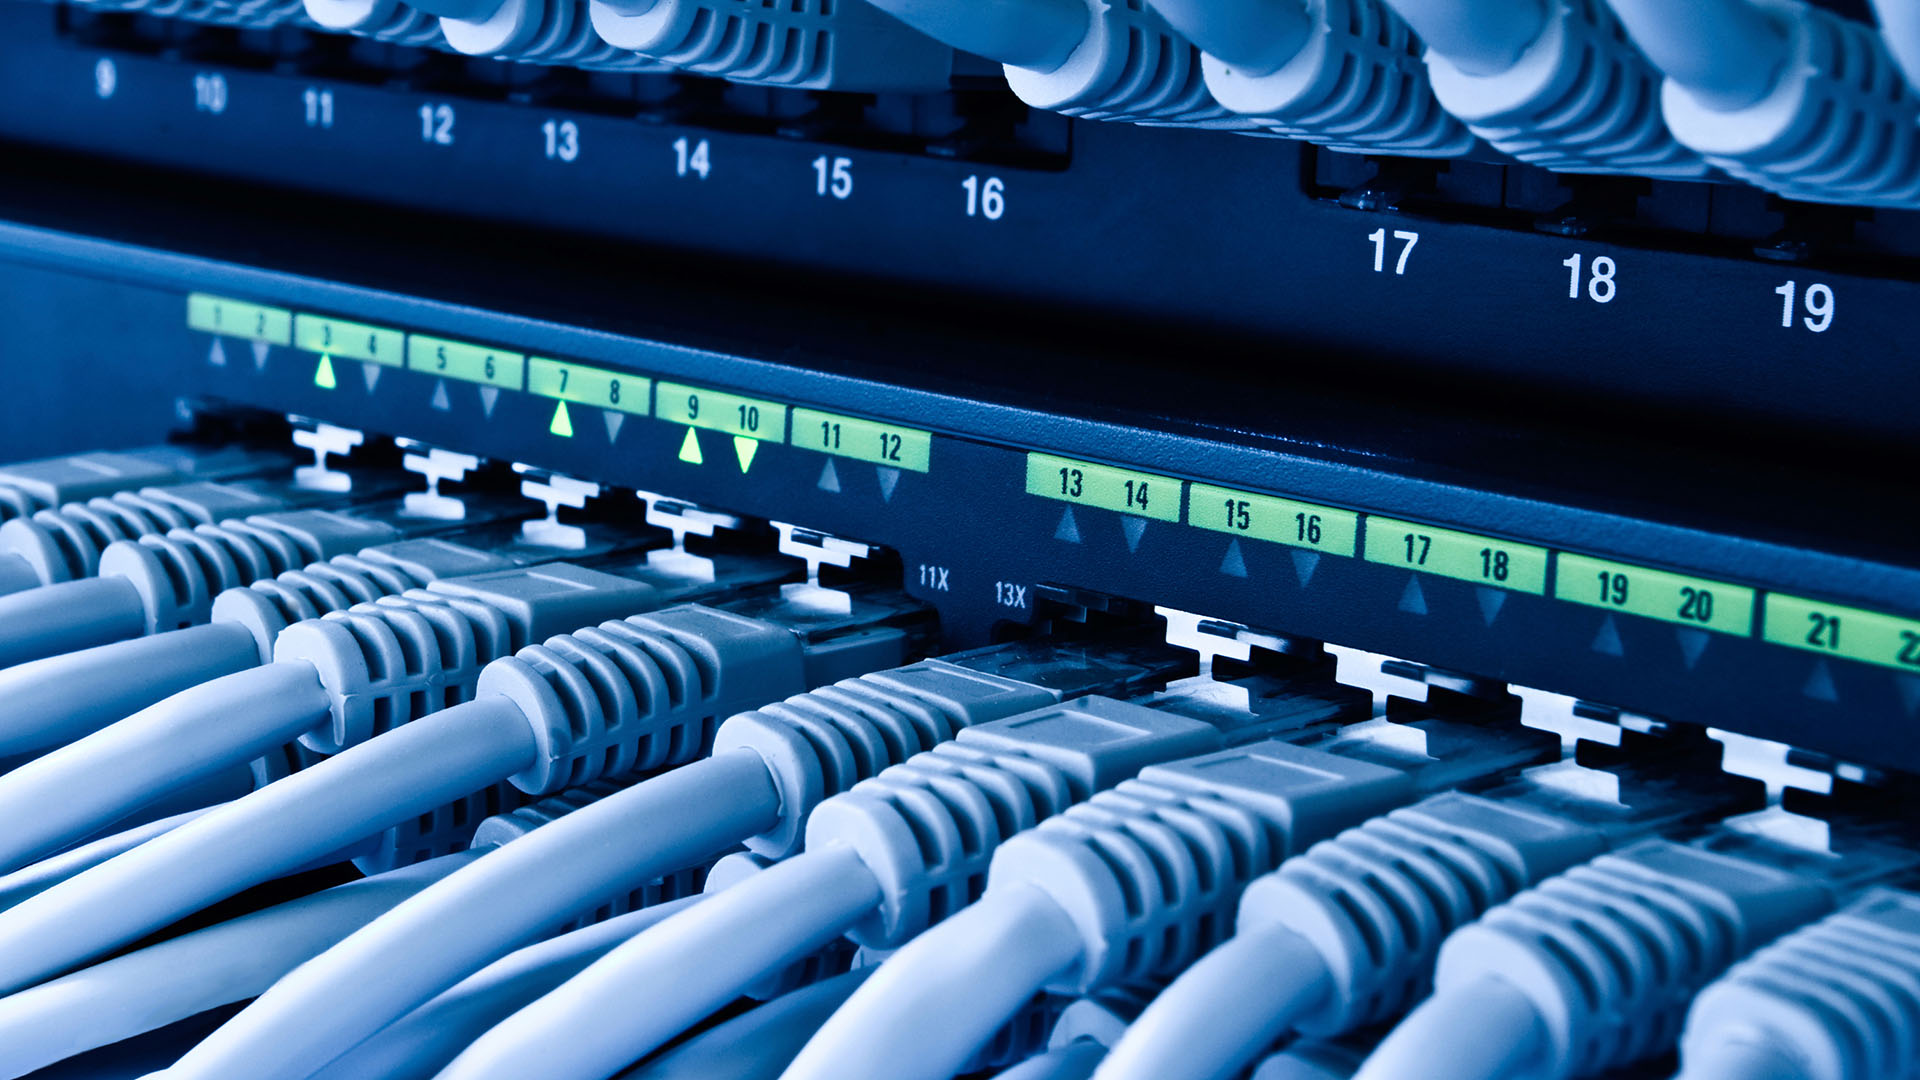 Albany GA Top Quality Onsite Cabling for Voice & Data Networks, Inside Wiring Solutions